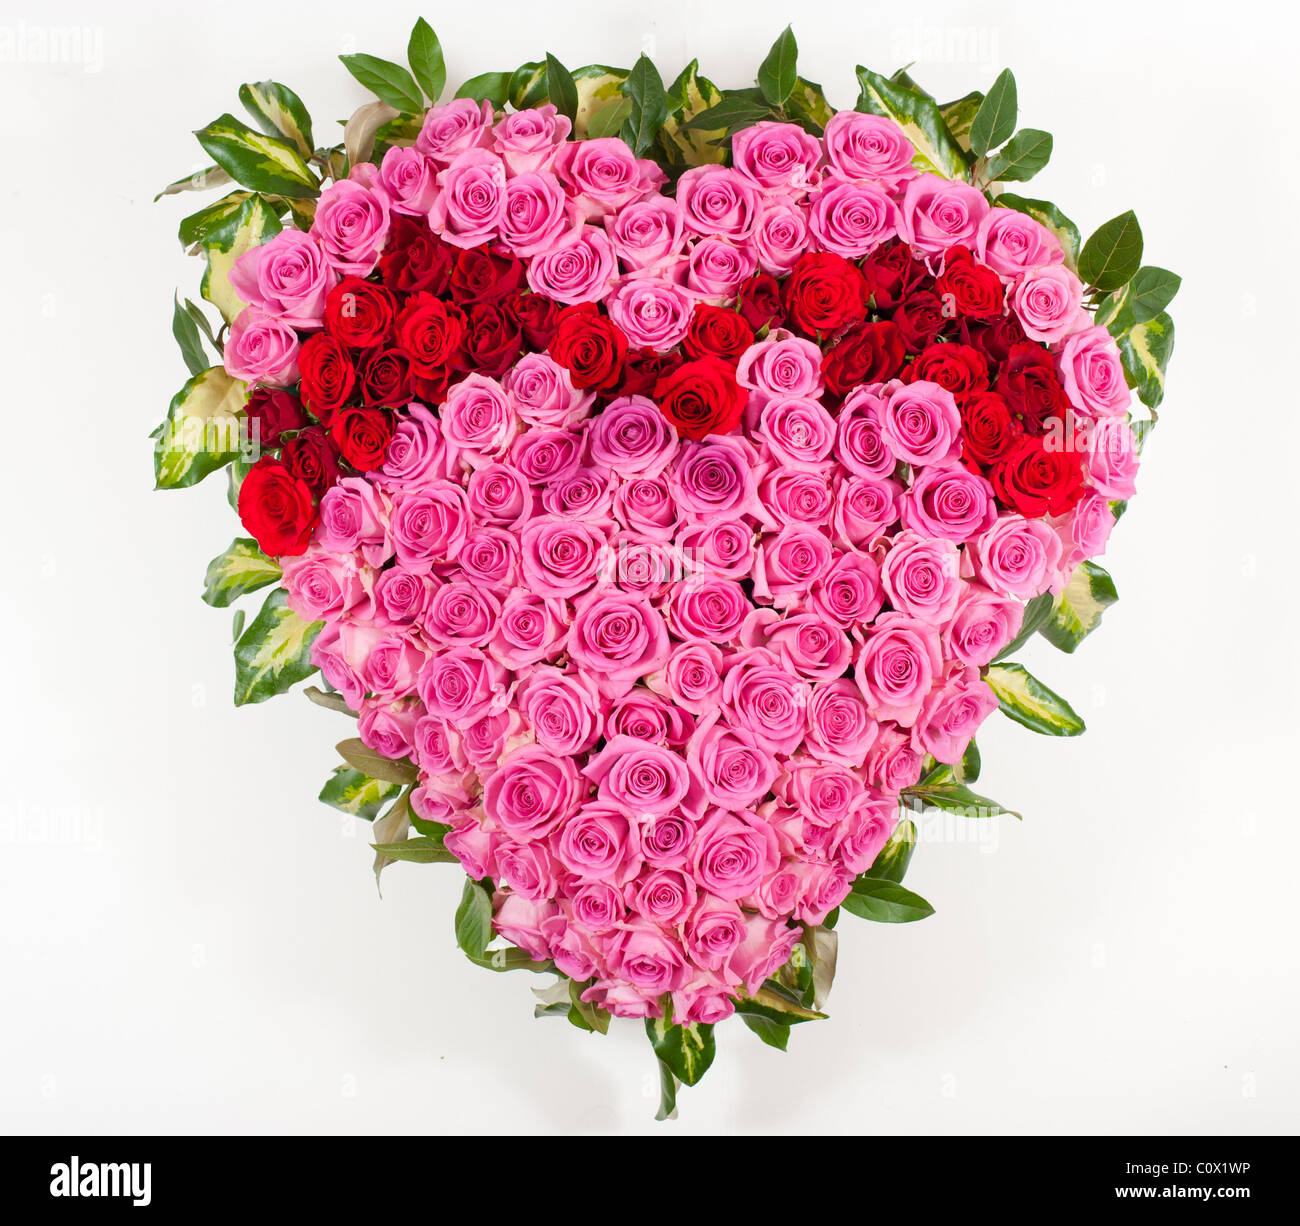 Heart shaped funeral flowers stock photo 34992994 alamy heart shaped funeral flowers izmirmasajfo